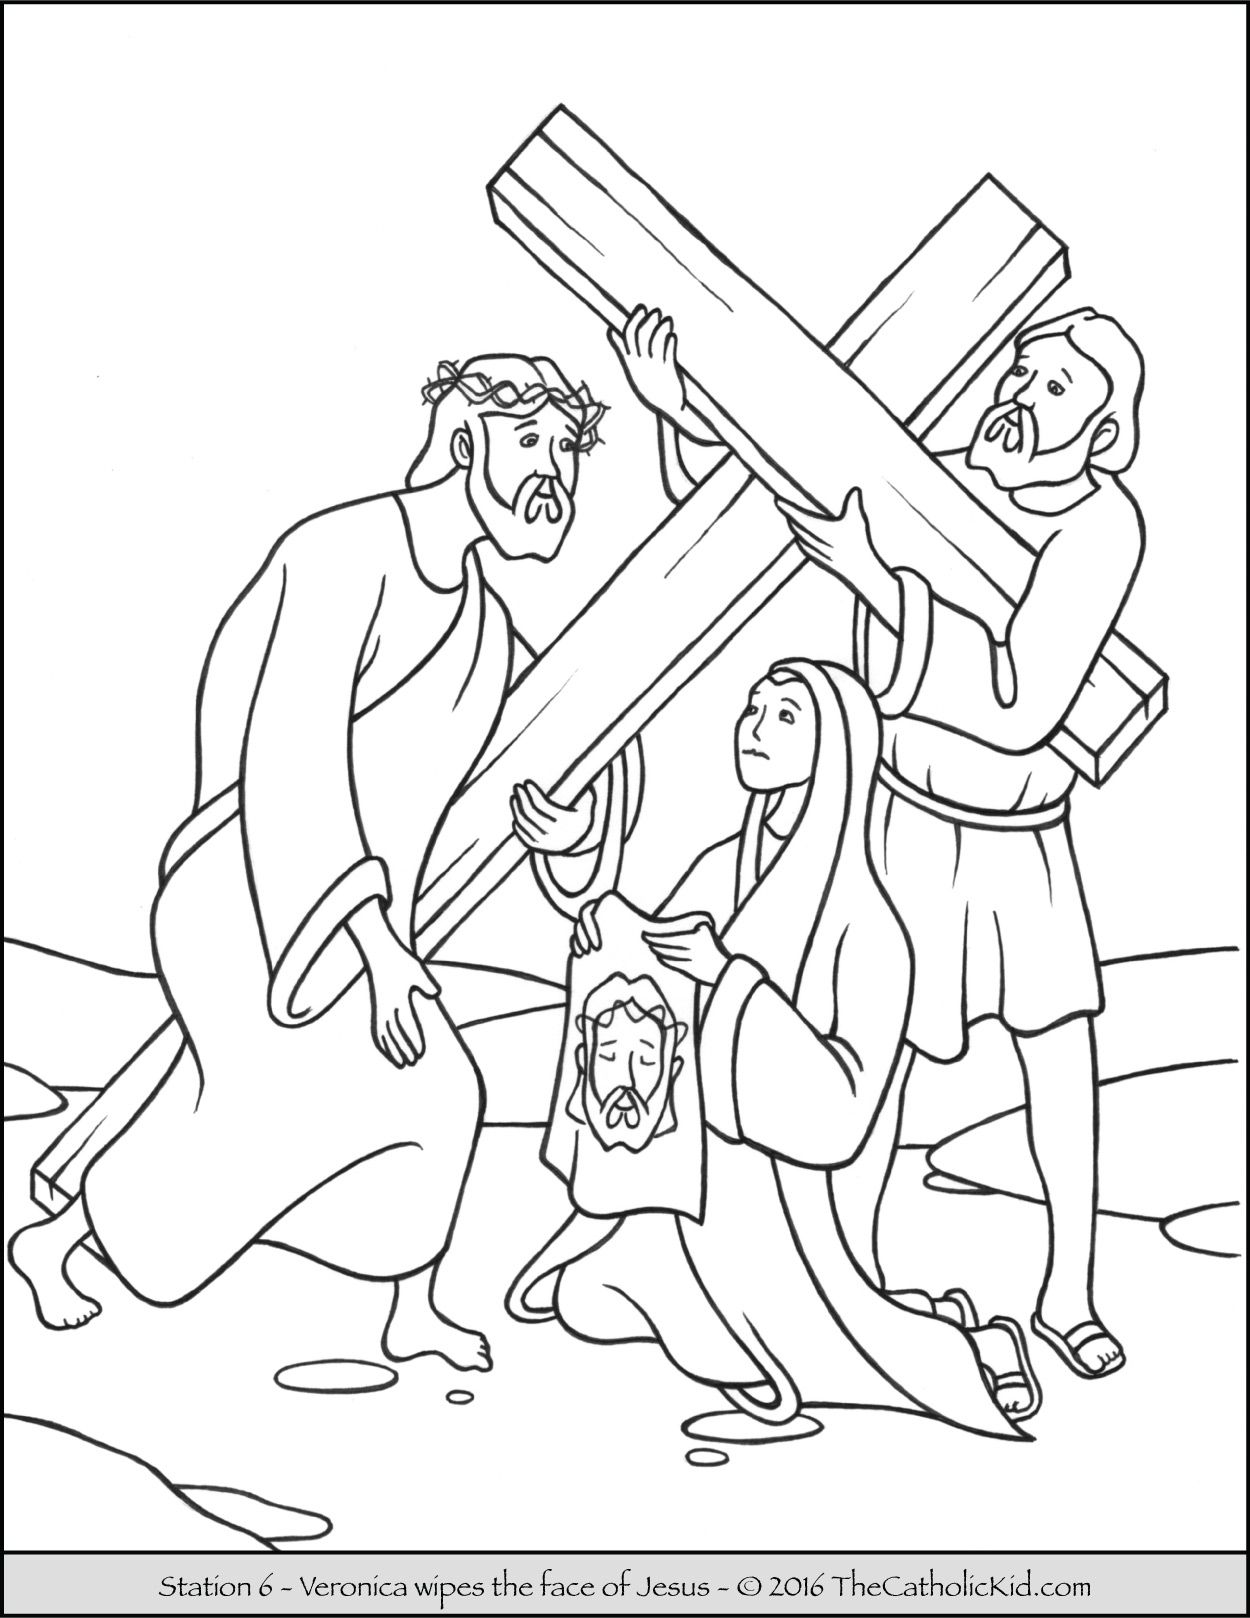 Coloring pages 6 year olds - Stations Of The Cross Coloring Pages 6 Veronica Wipes The Face Of Jesus